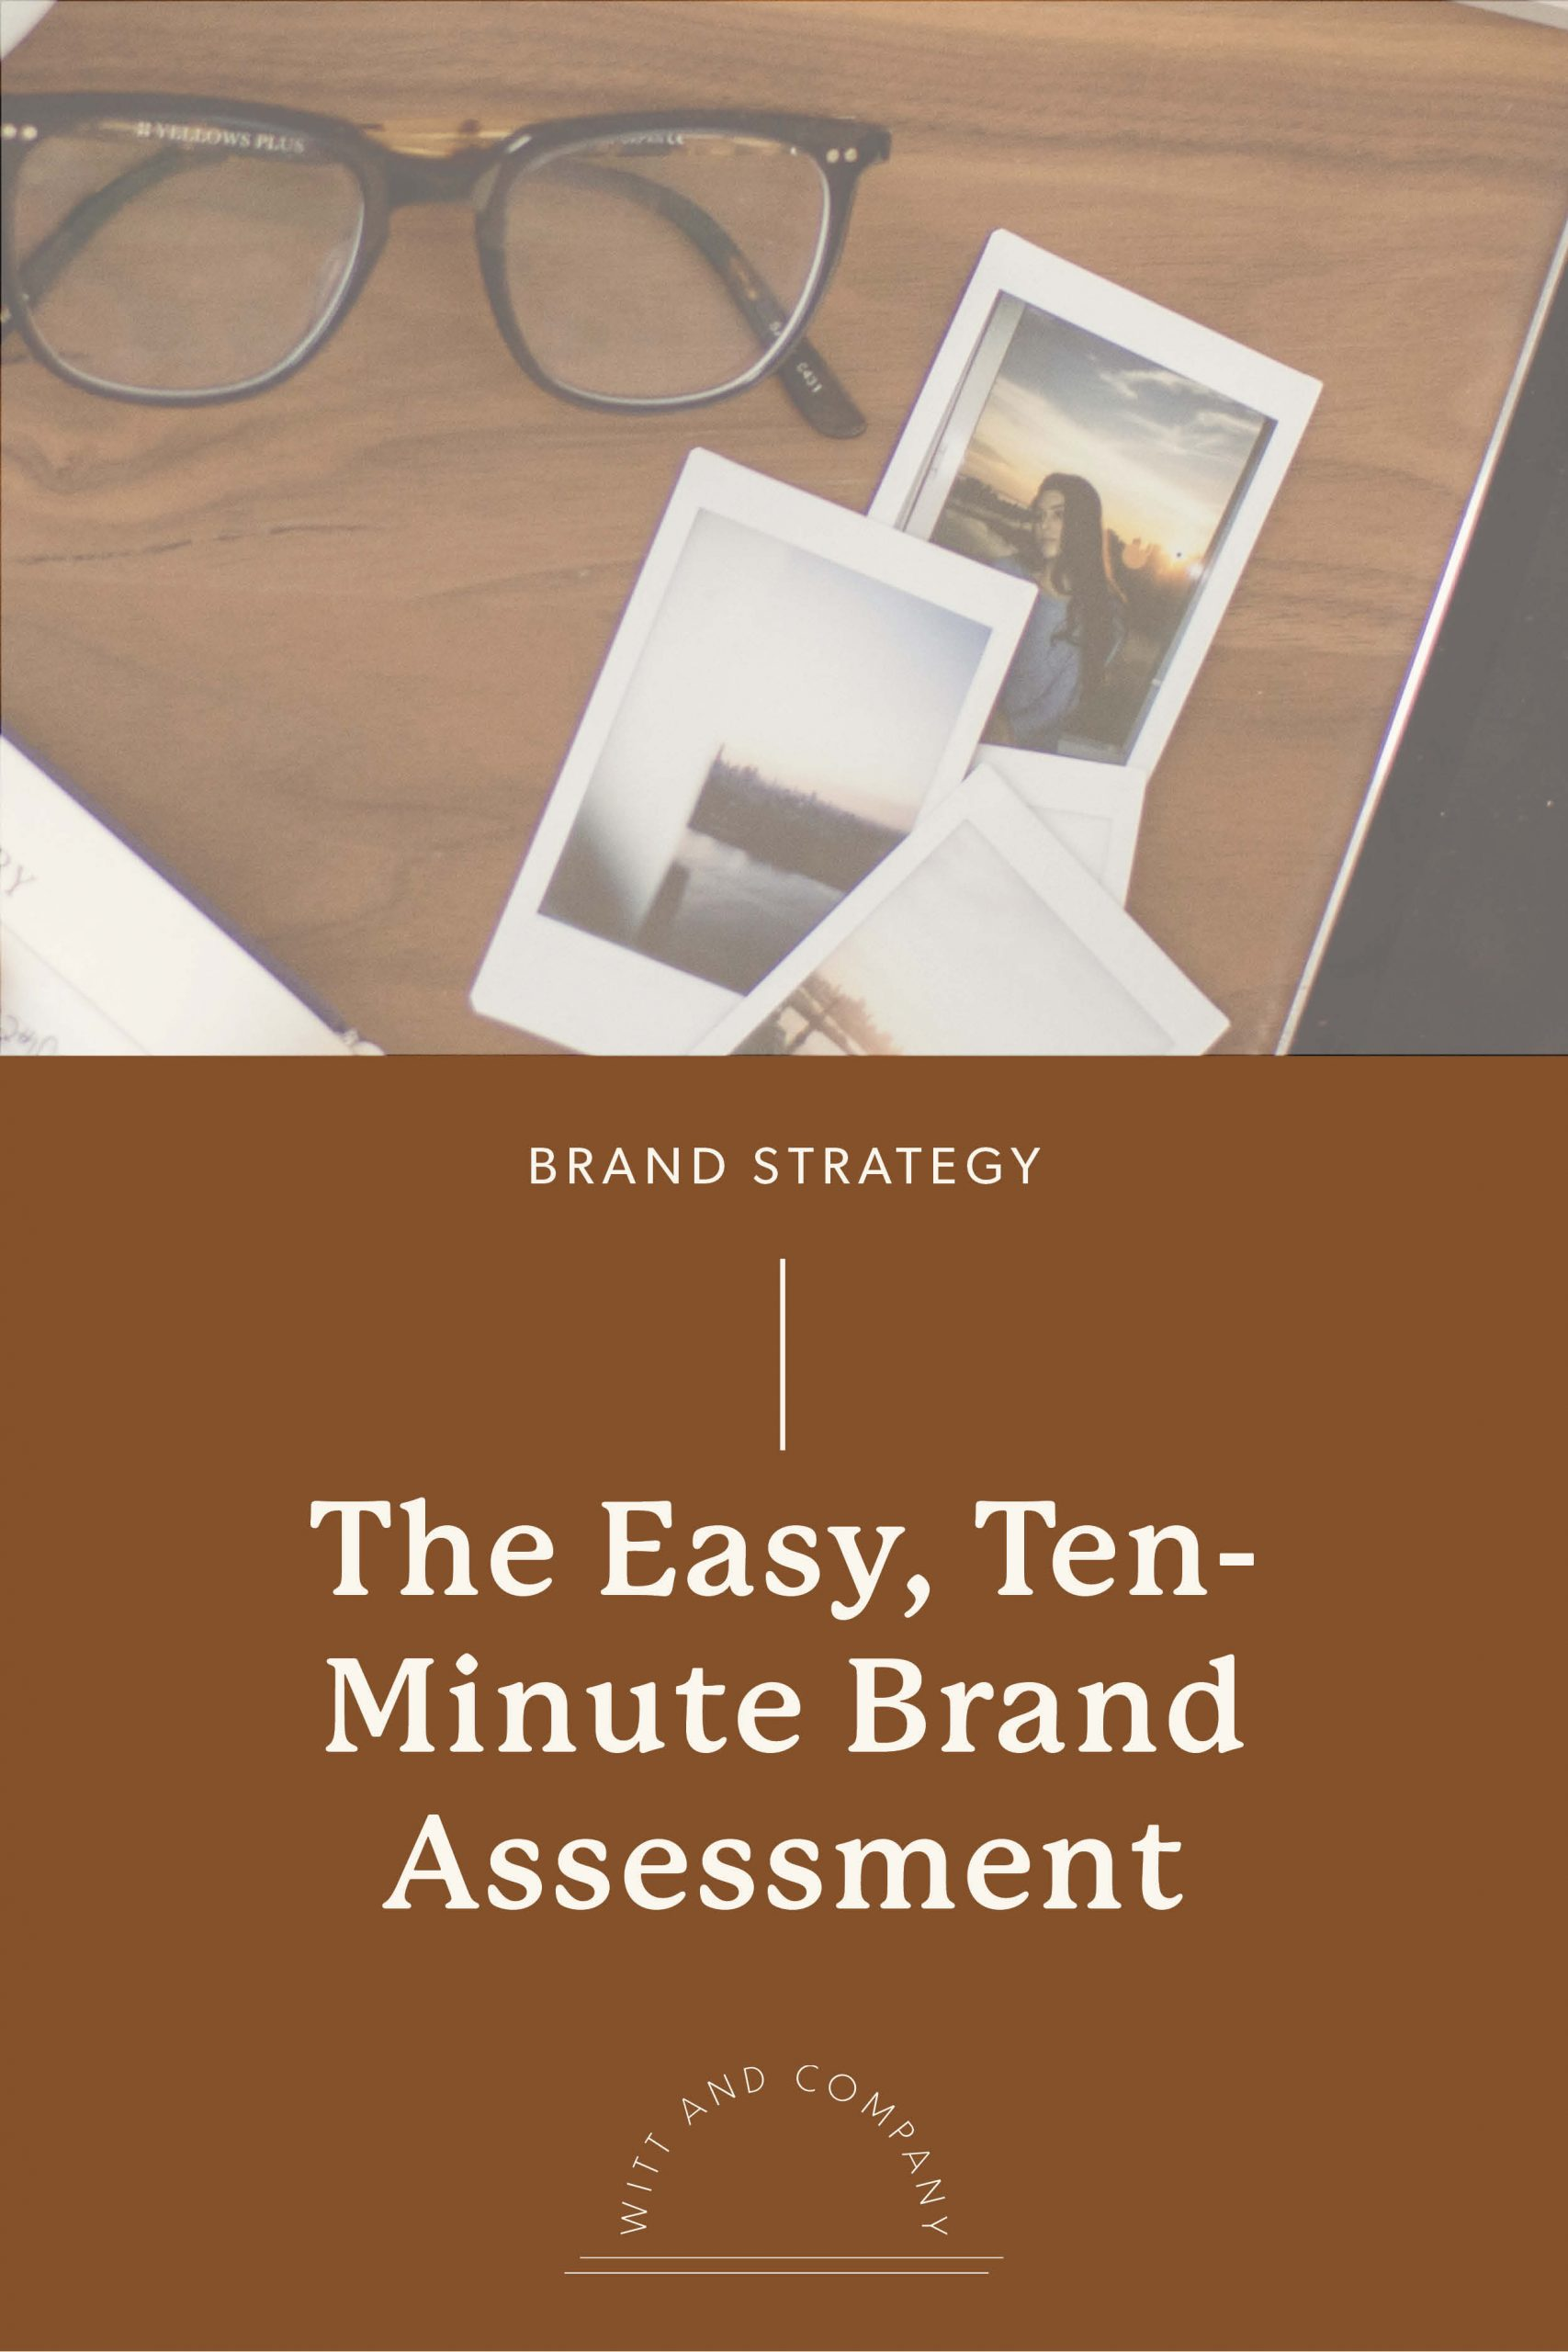 How to Perform a Brand Assessment